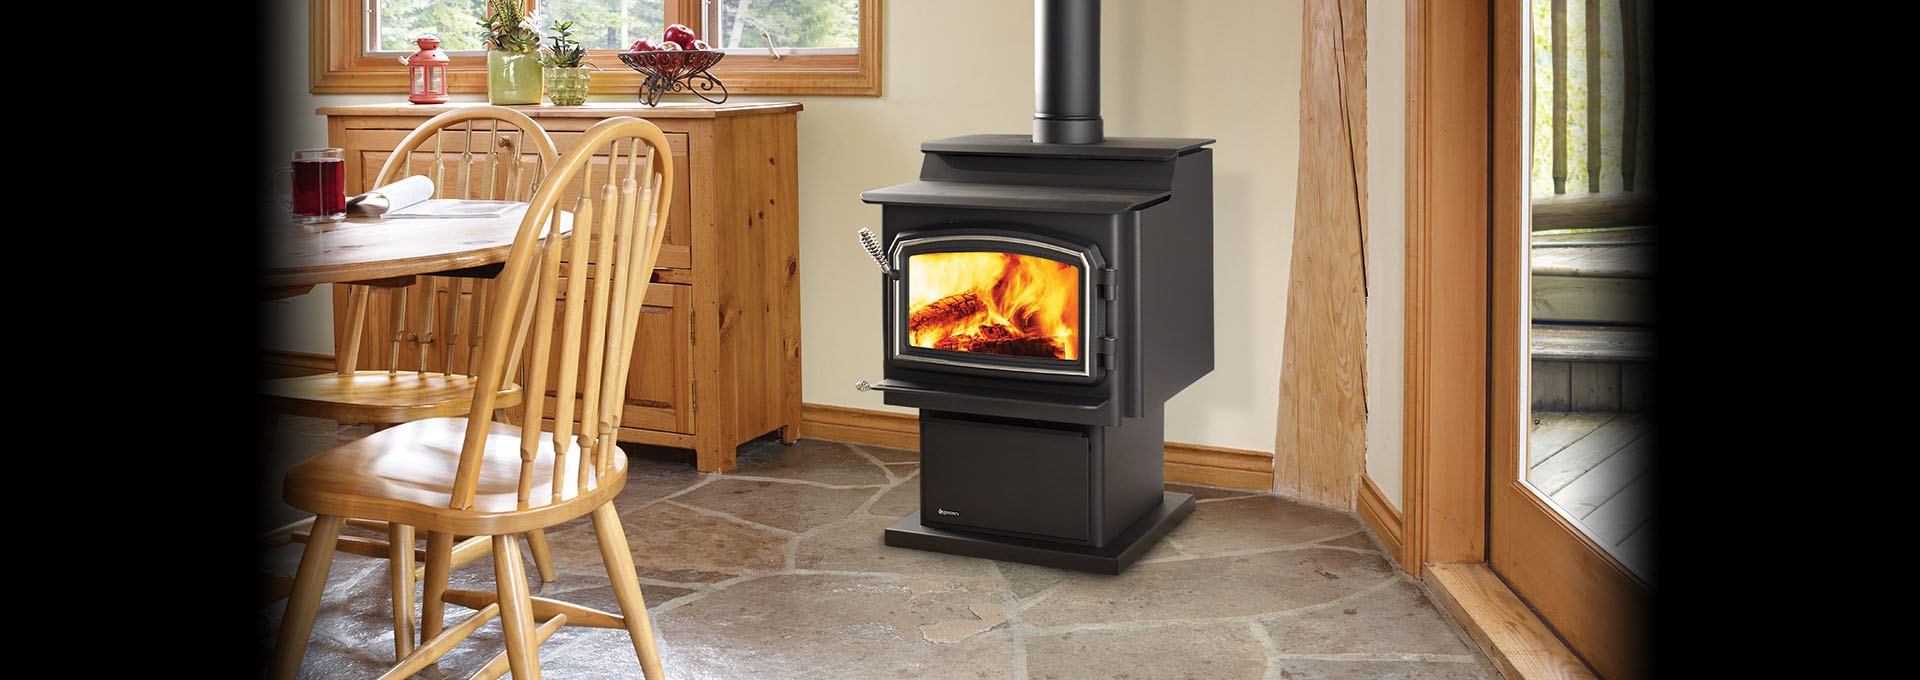 s2400 medium wood stove regency fireplace products rh regency fire com Regency Stoves Regency Fireplace Parts